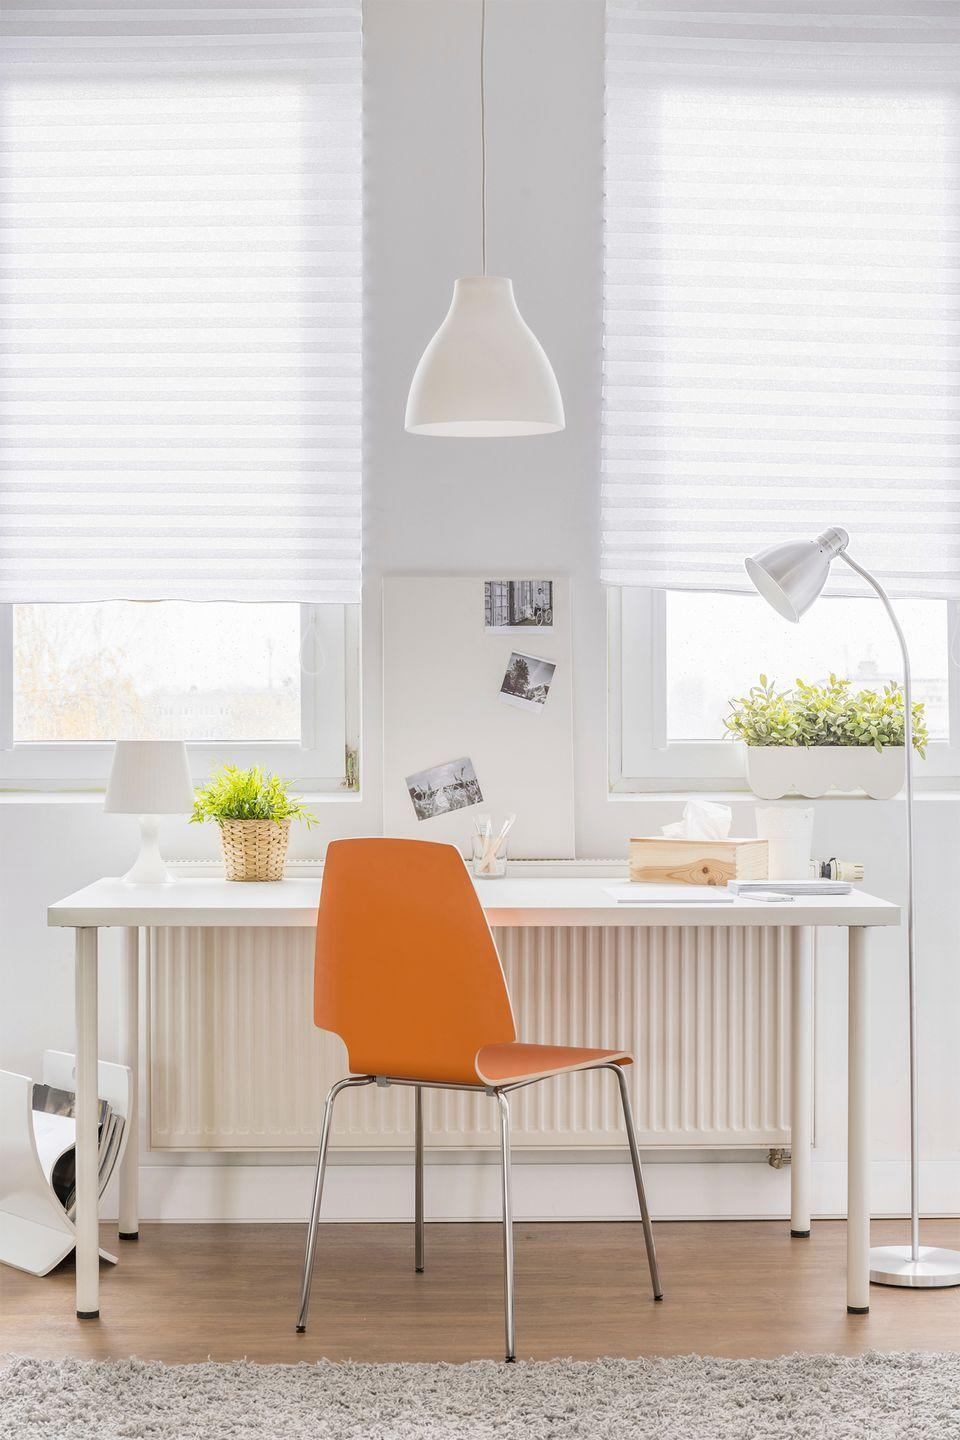 <p>Give your home office some Scandinavian-inspired flair by keeping your space light, airy, and minimalistic. Adding one colored piece — a bright orange desk chair, for example — makes a statement. </p>